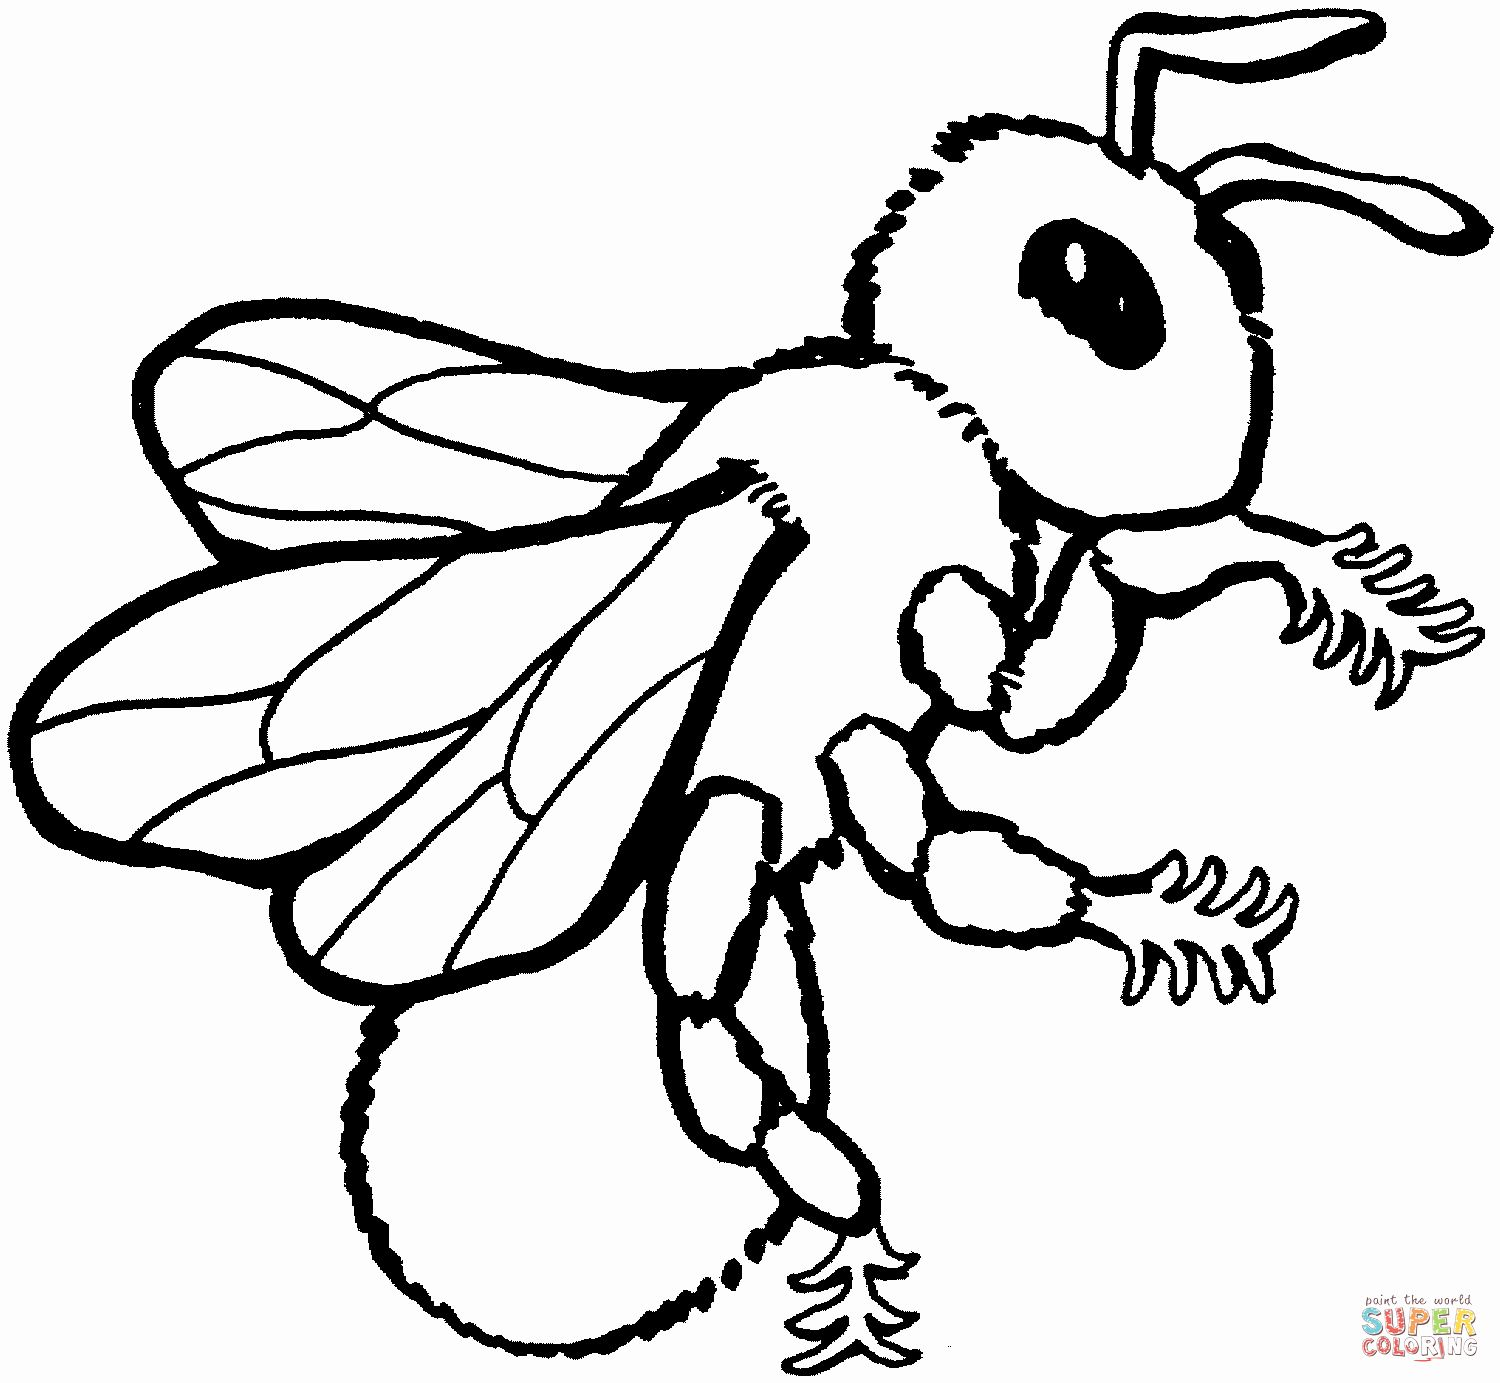 Coloring Pages Of Bees Luxury The Bee 7 Coloring Pages To View Printable Version Or Halaman Mewarnai [ 1383 x 1500 Pixel ]